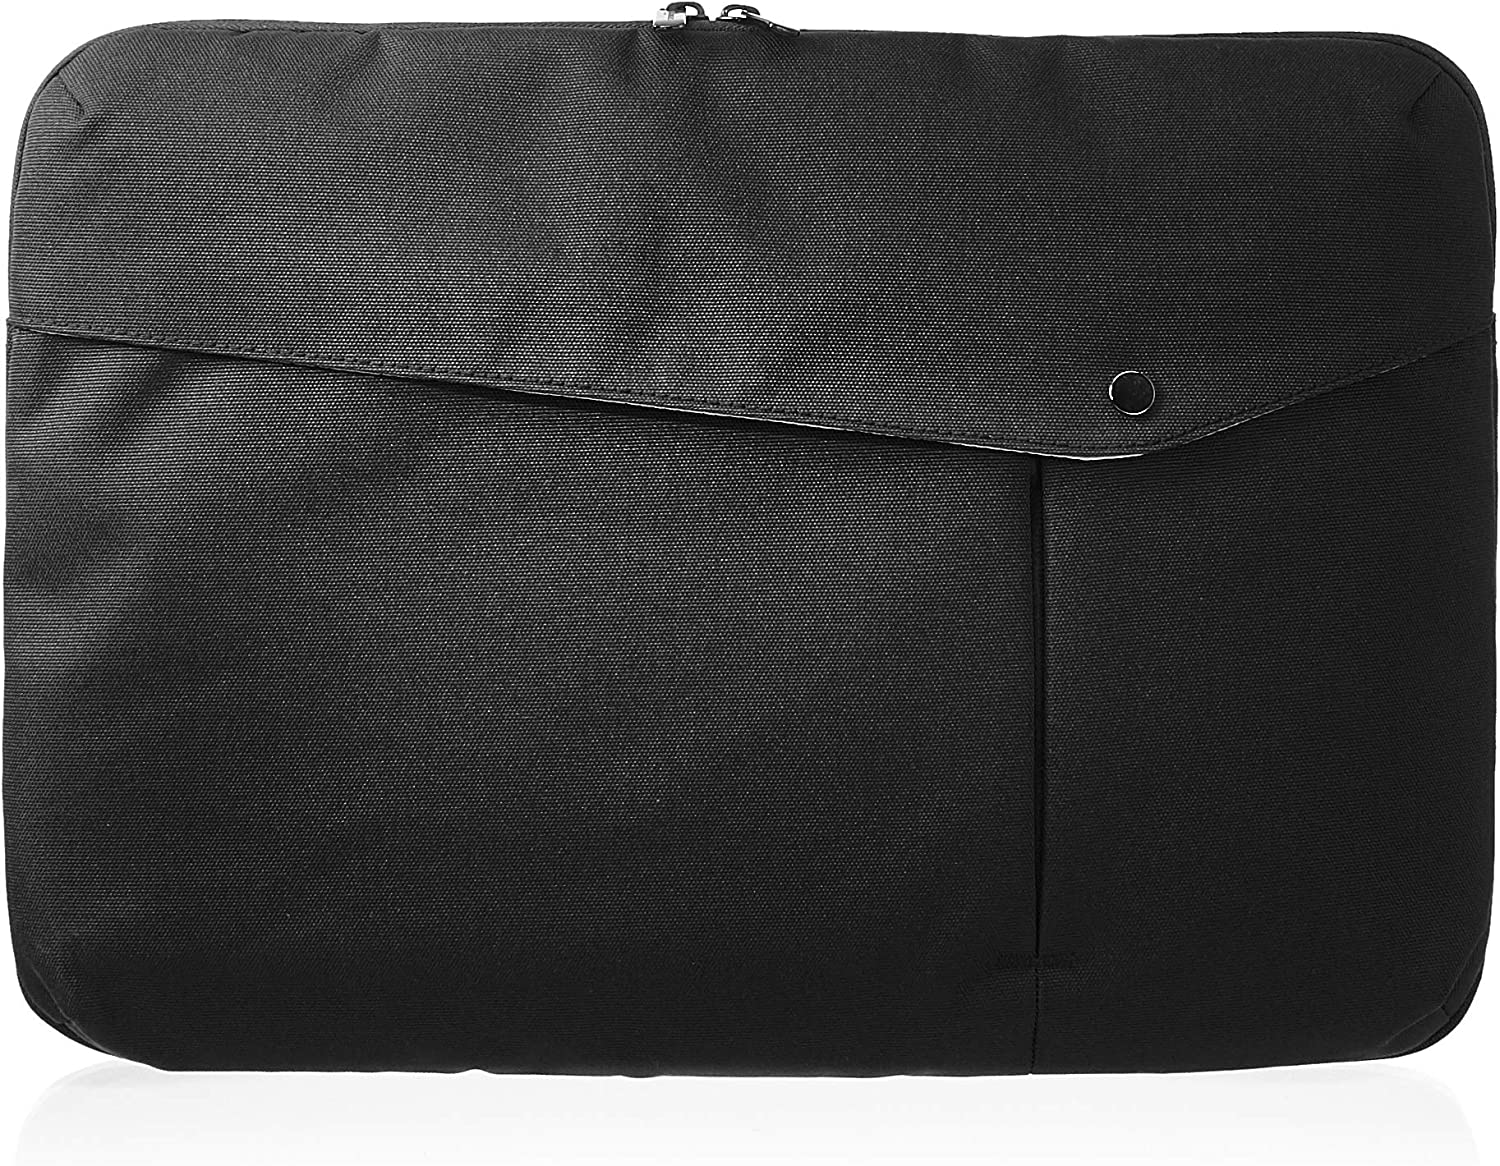 AmazonBasics Laptop Sleeve - 15-Inch, Black